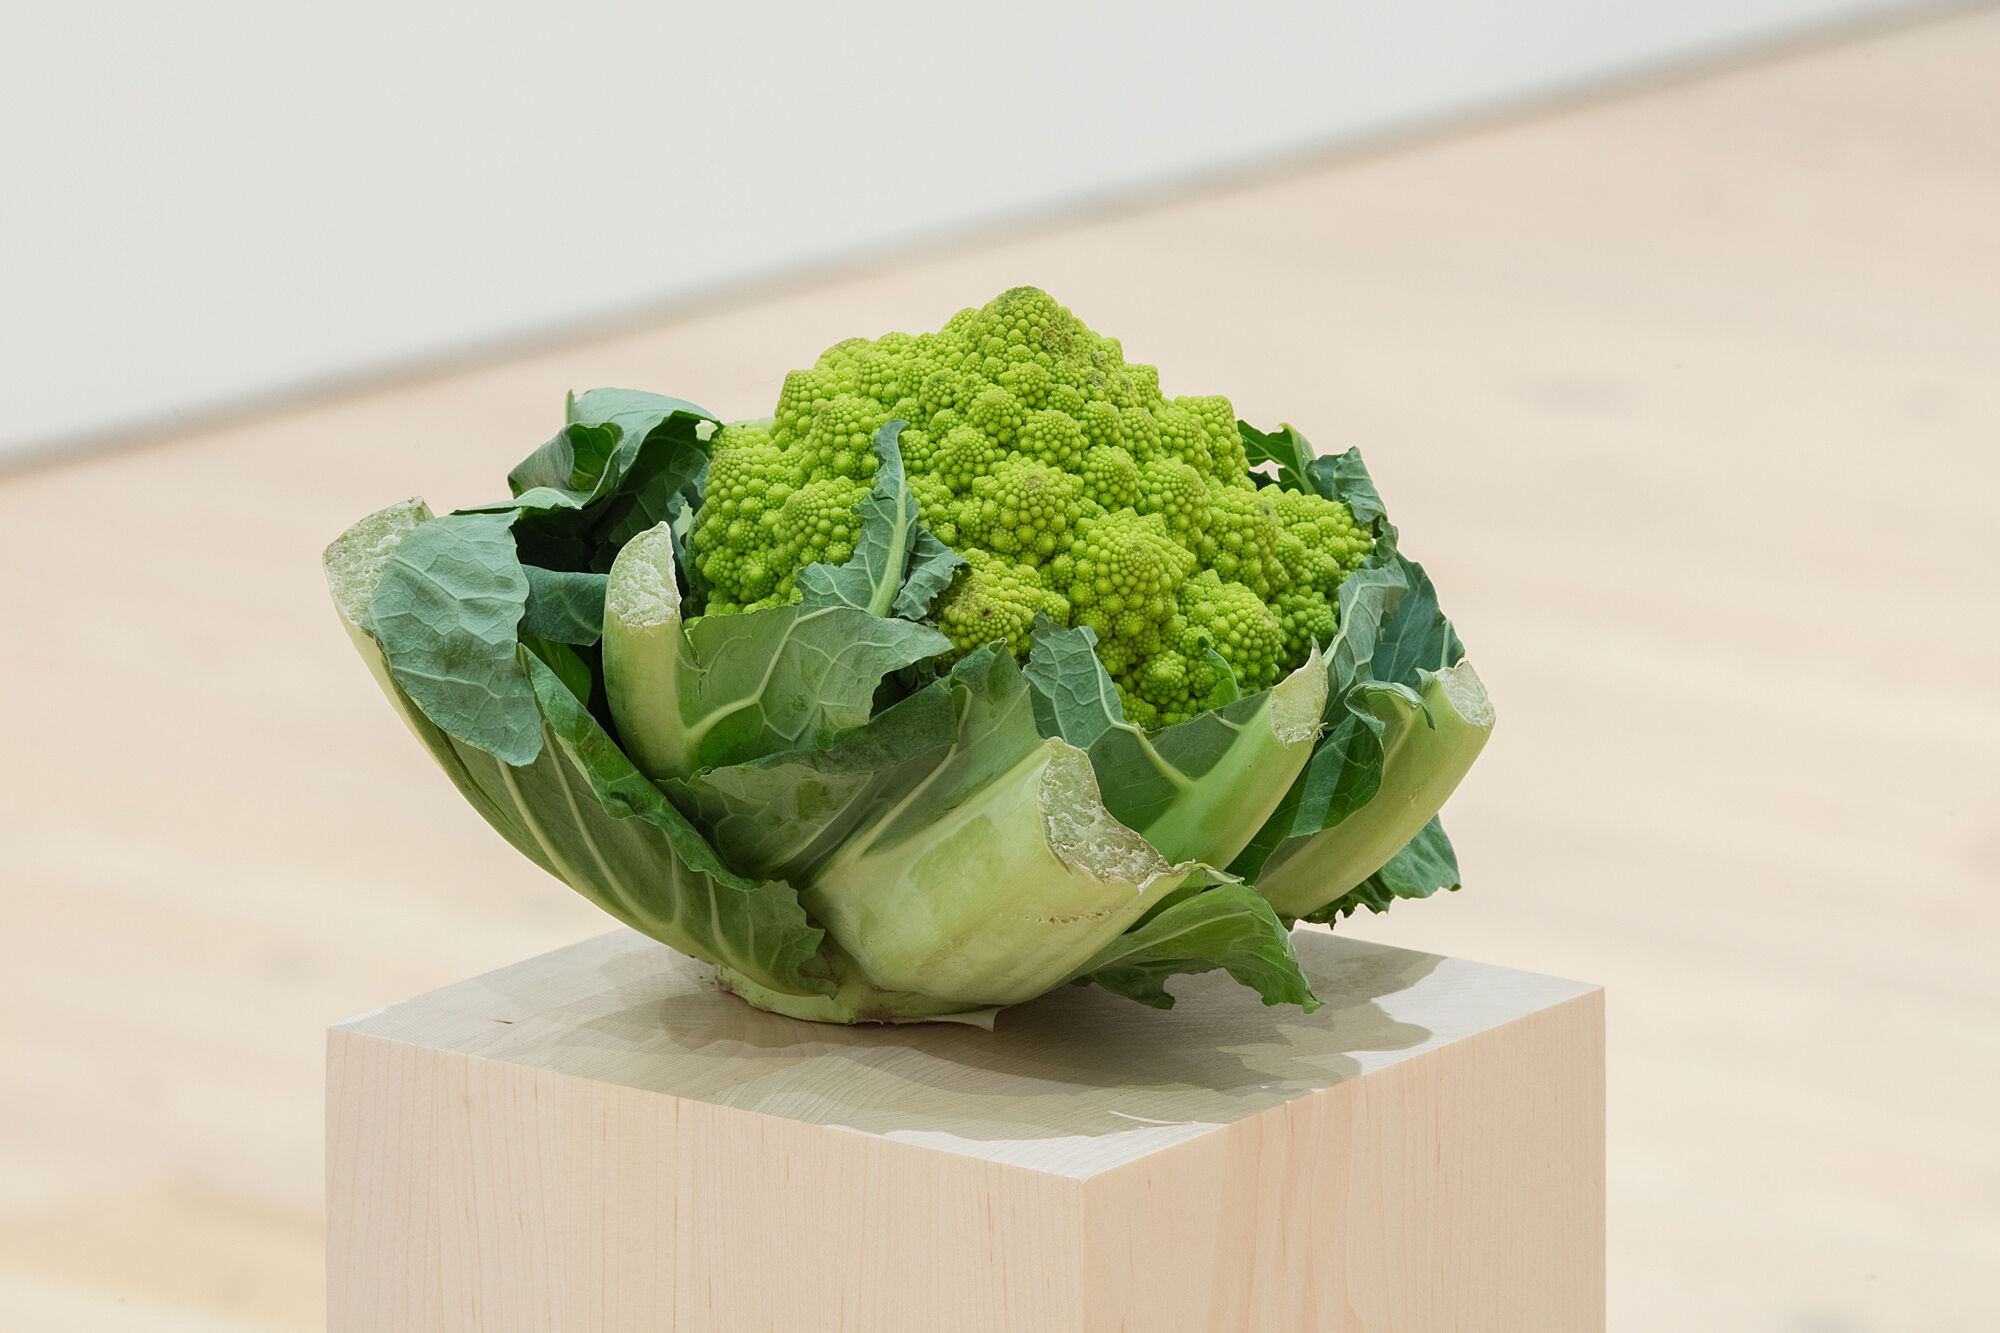 A photo of cauliflower on a plinth.